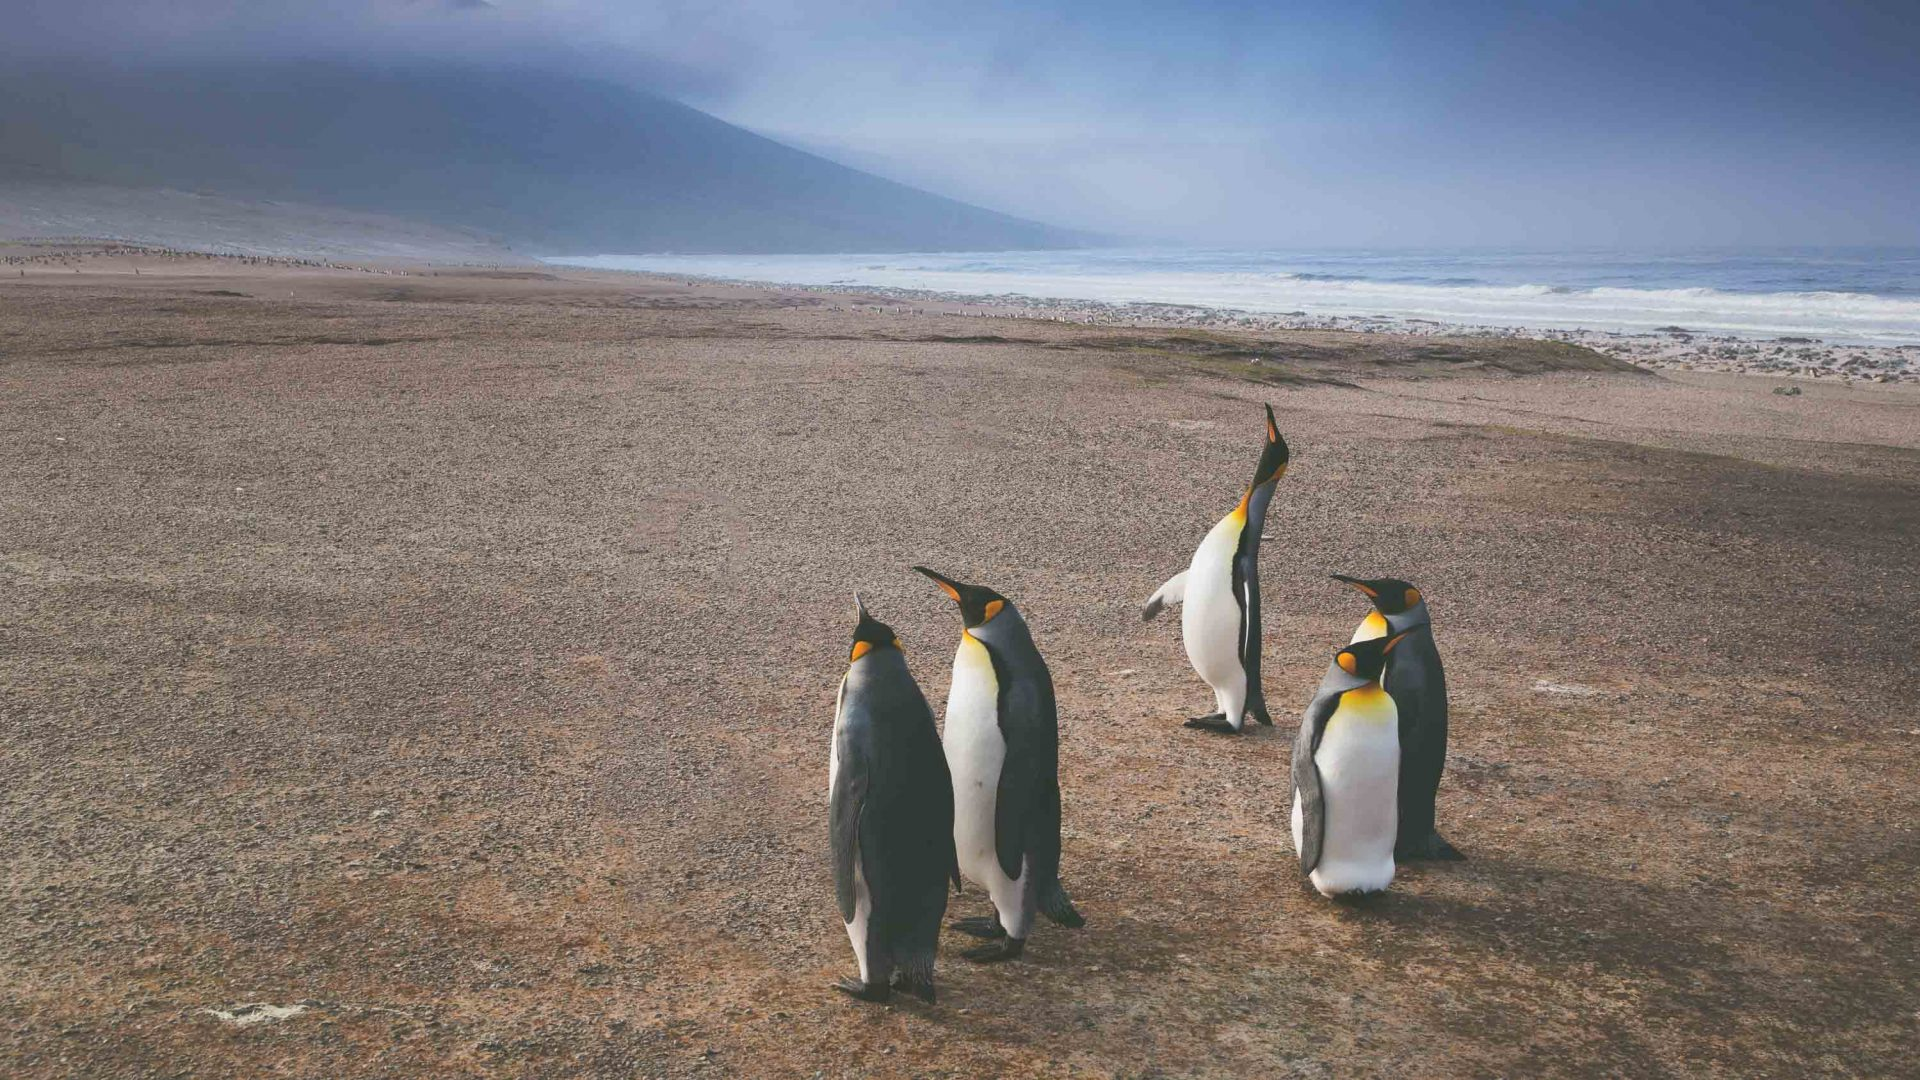 Penguin colonies are common in the Falkland Islands.